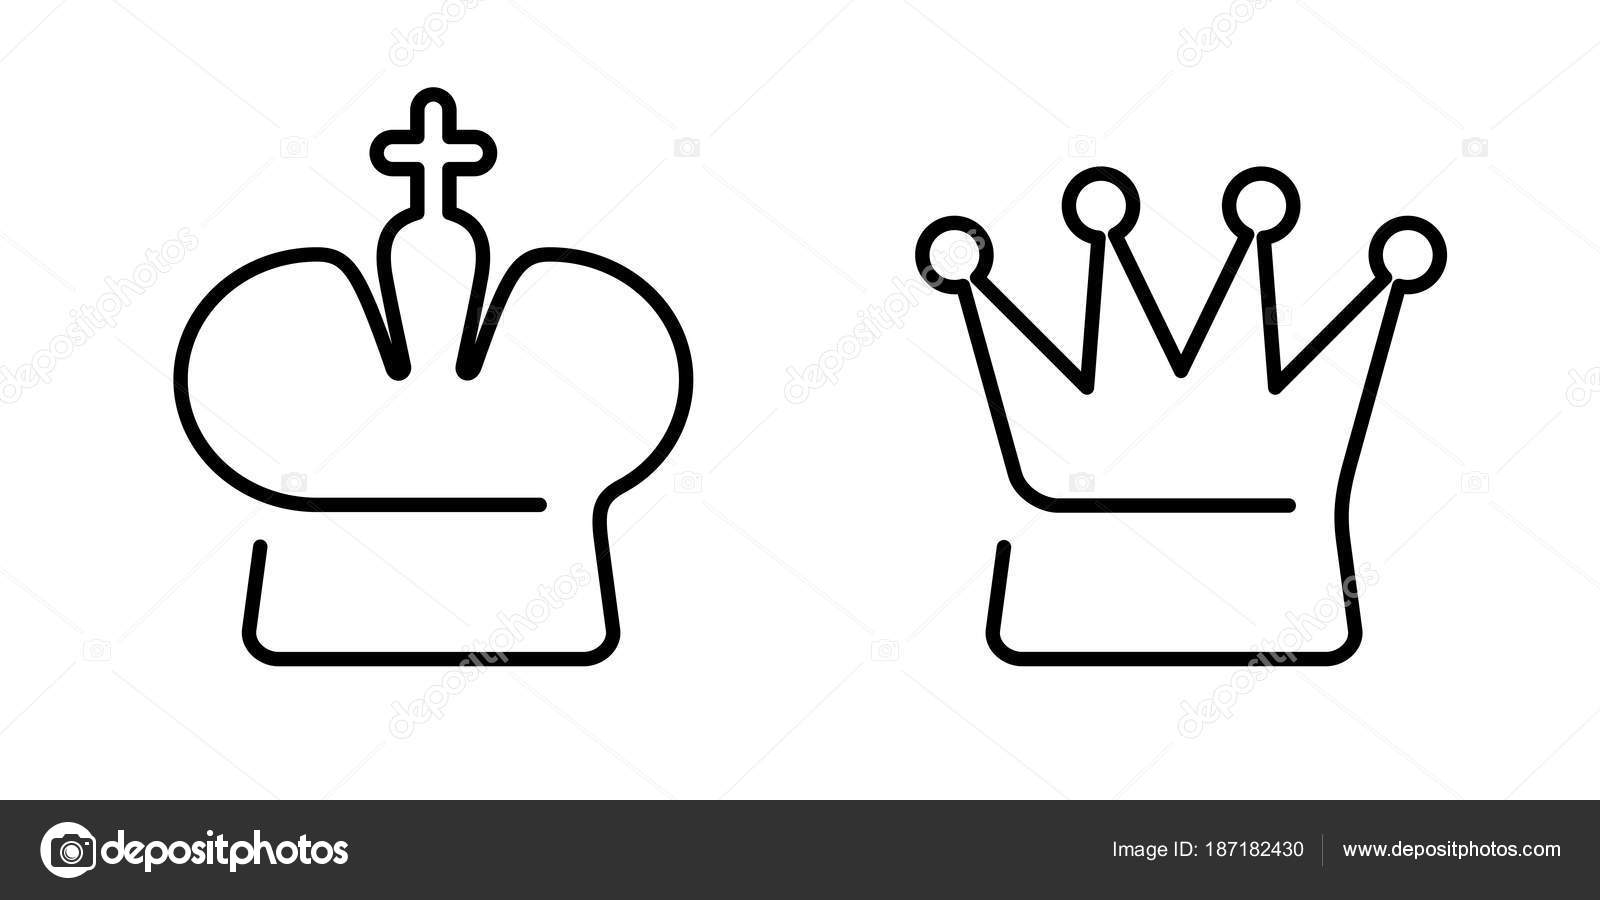 Crown of king and queen chess symbols icons stock vector linear crown of king and queen on white chess symbols icons schematically vector by azatvaleev biocorpaavc Gallery